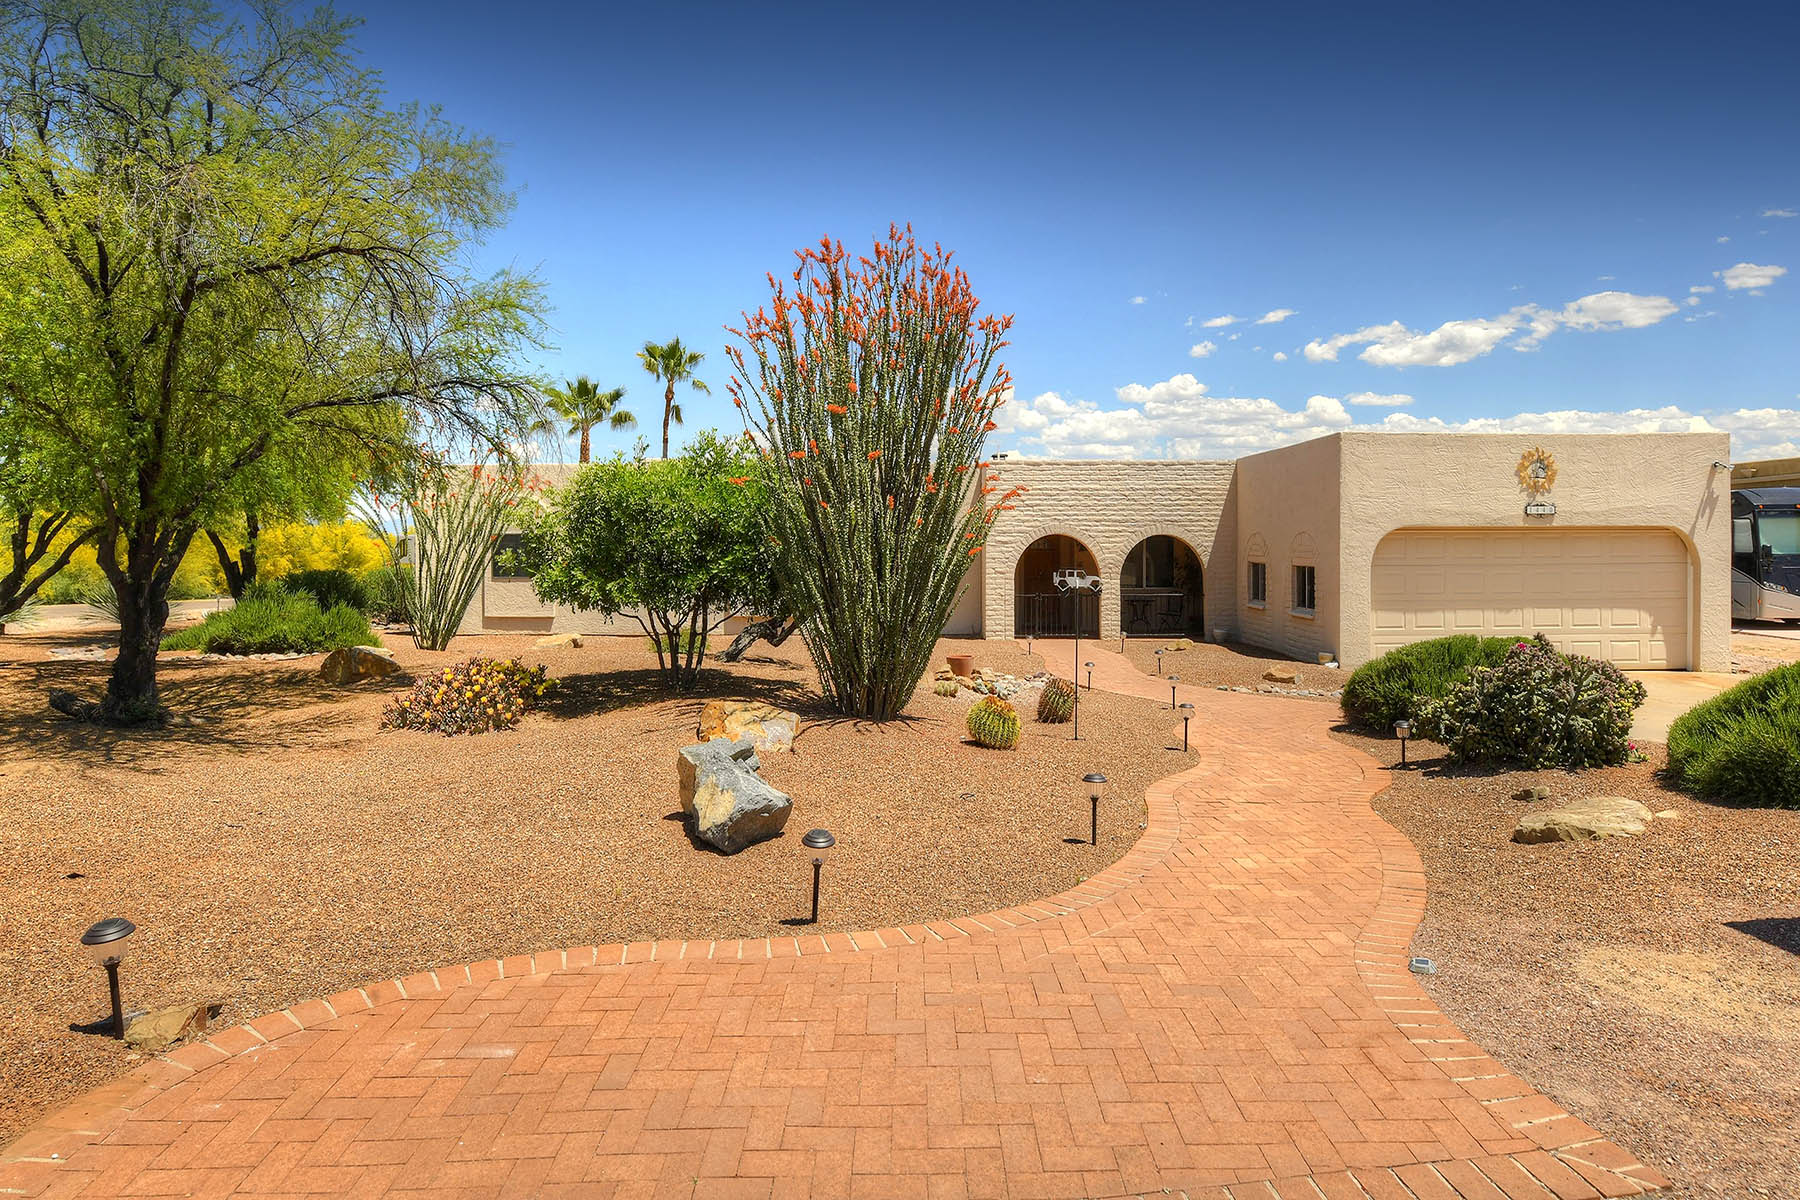 Single Family Homes for Active at Beautifully Landscaped on a Corner Lot with Tremendous Privacy 1440 N. La Luna Green Valley, Arizona 85614 United States